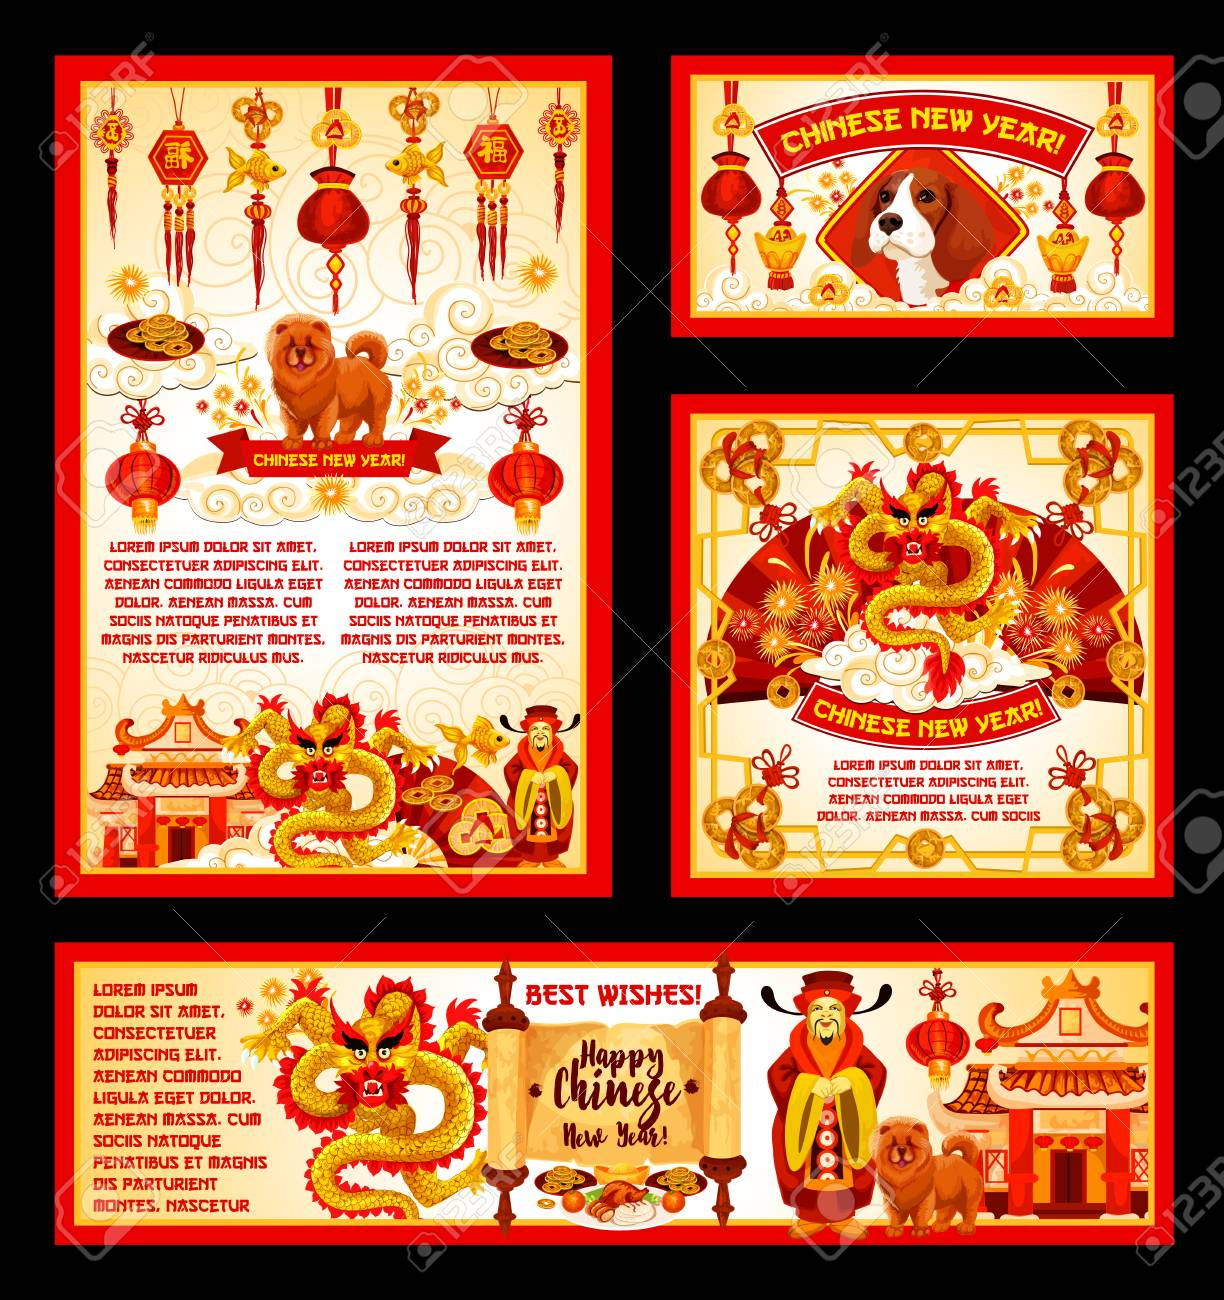 Happy Chinese New Year Greeting Cards Or Banners Of Traditional